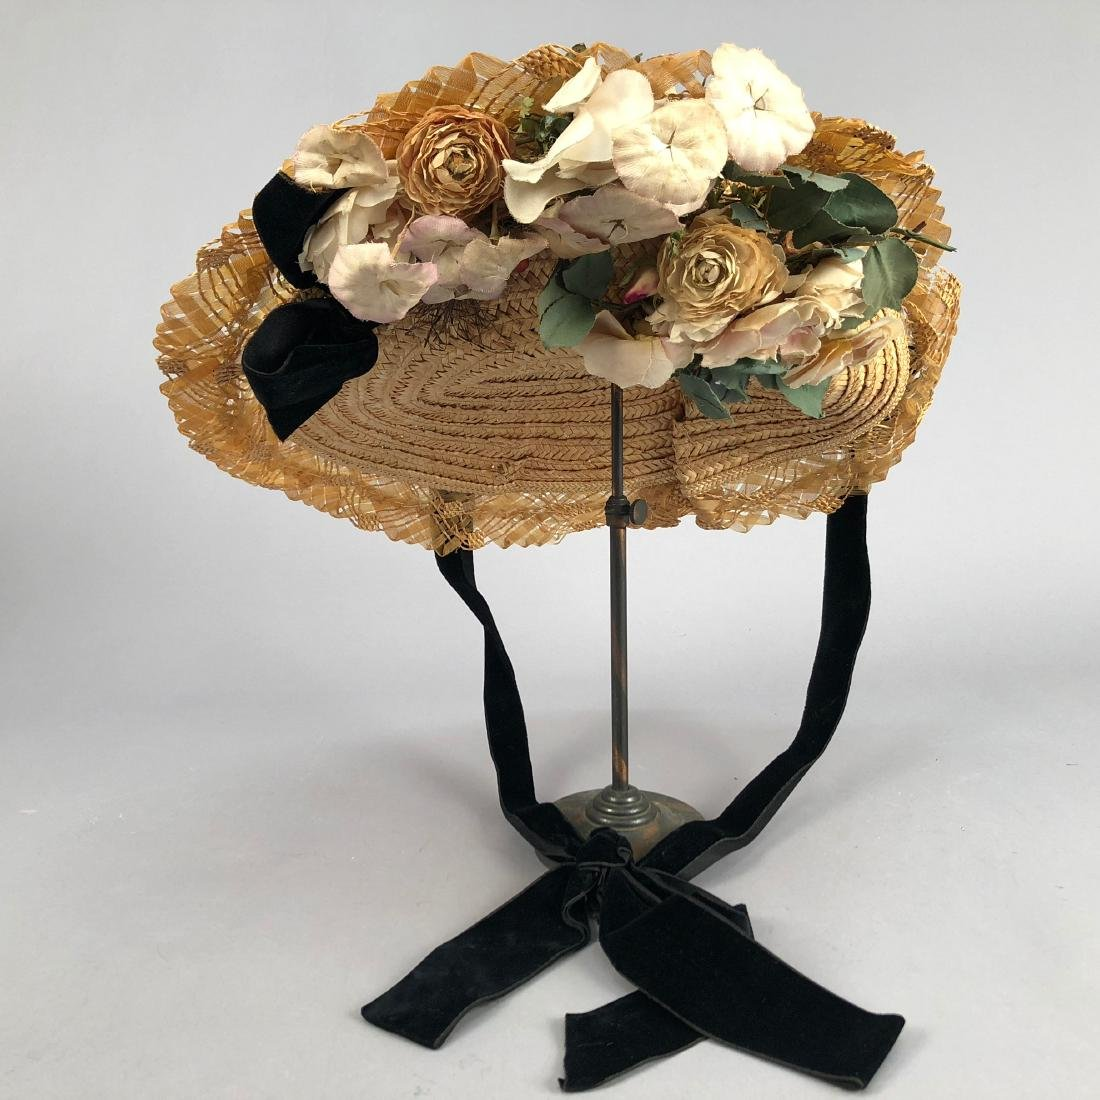 BRAIDED STRAW HAT with ROSES, 1905 - 2